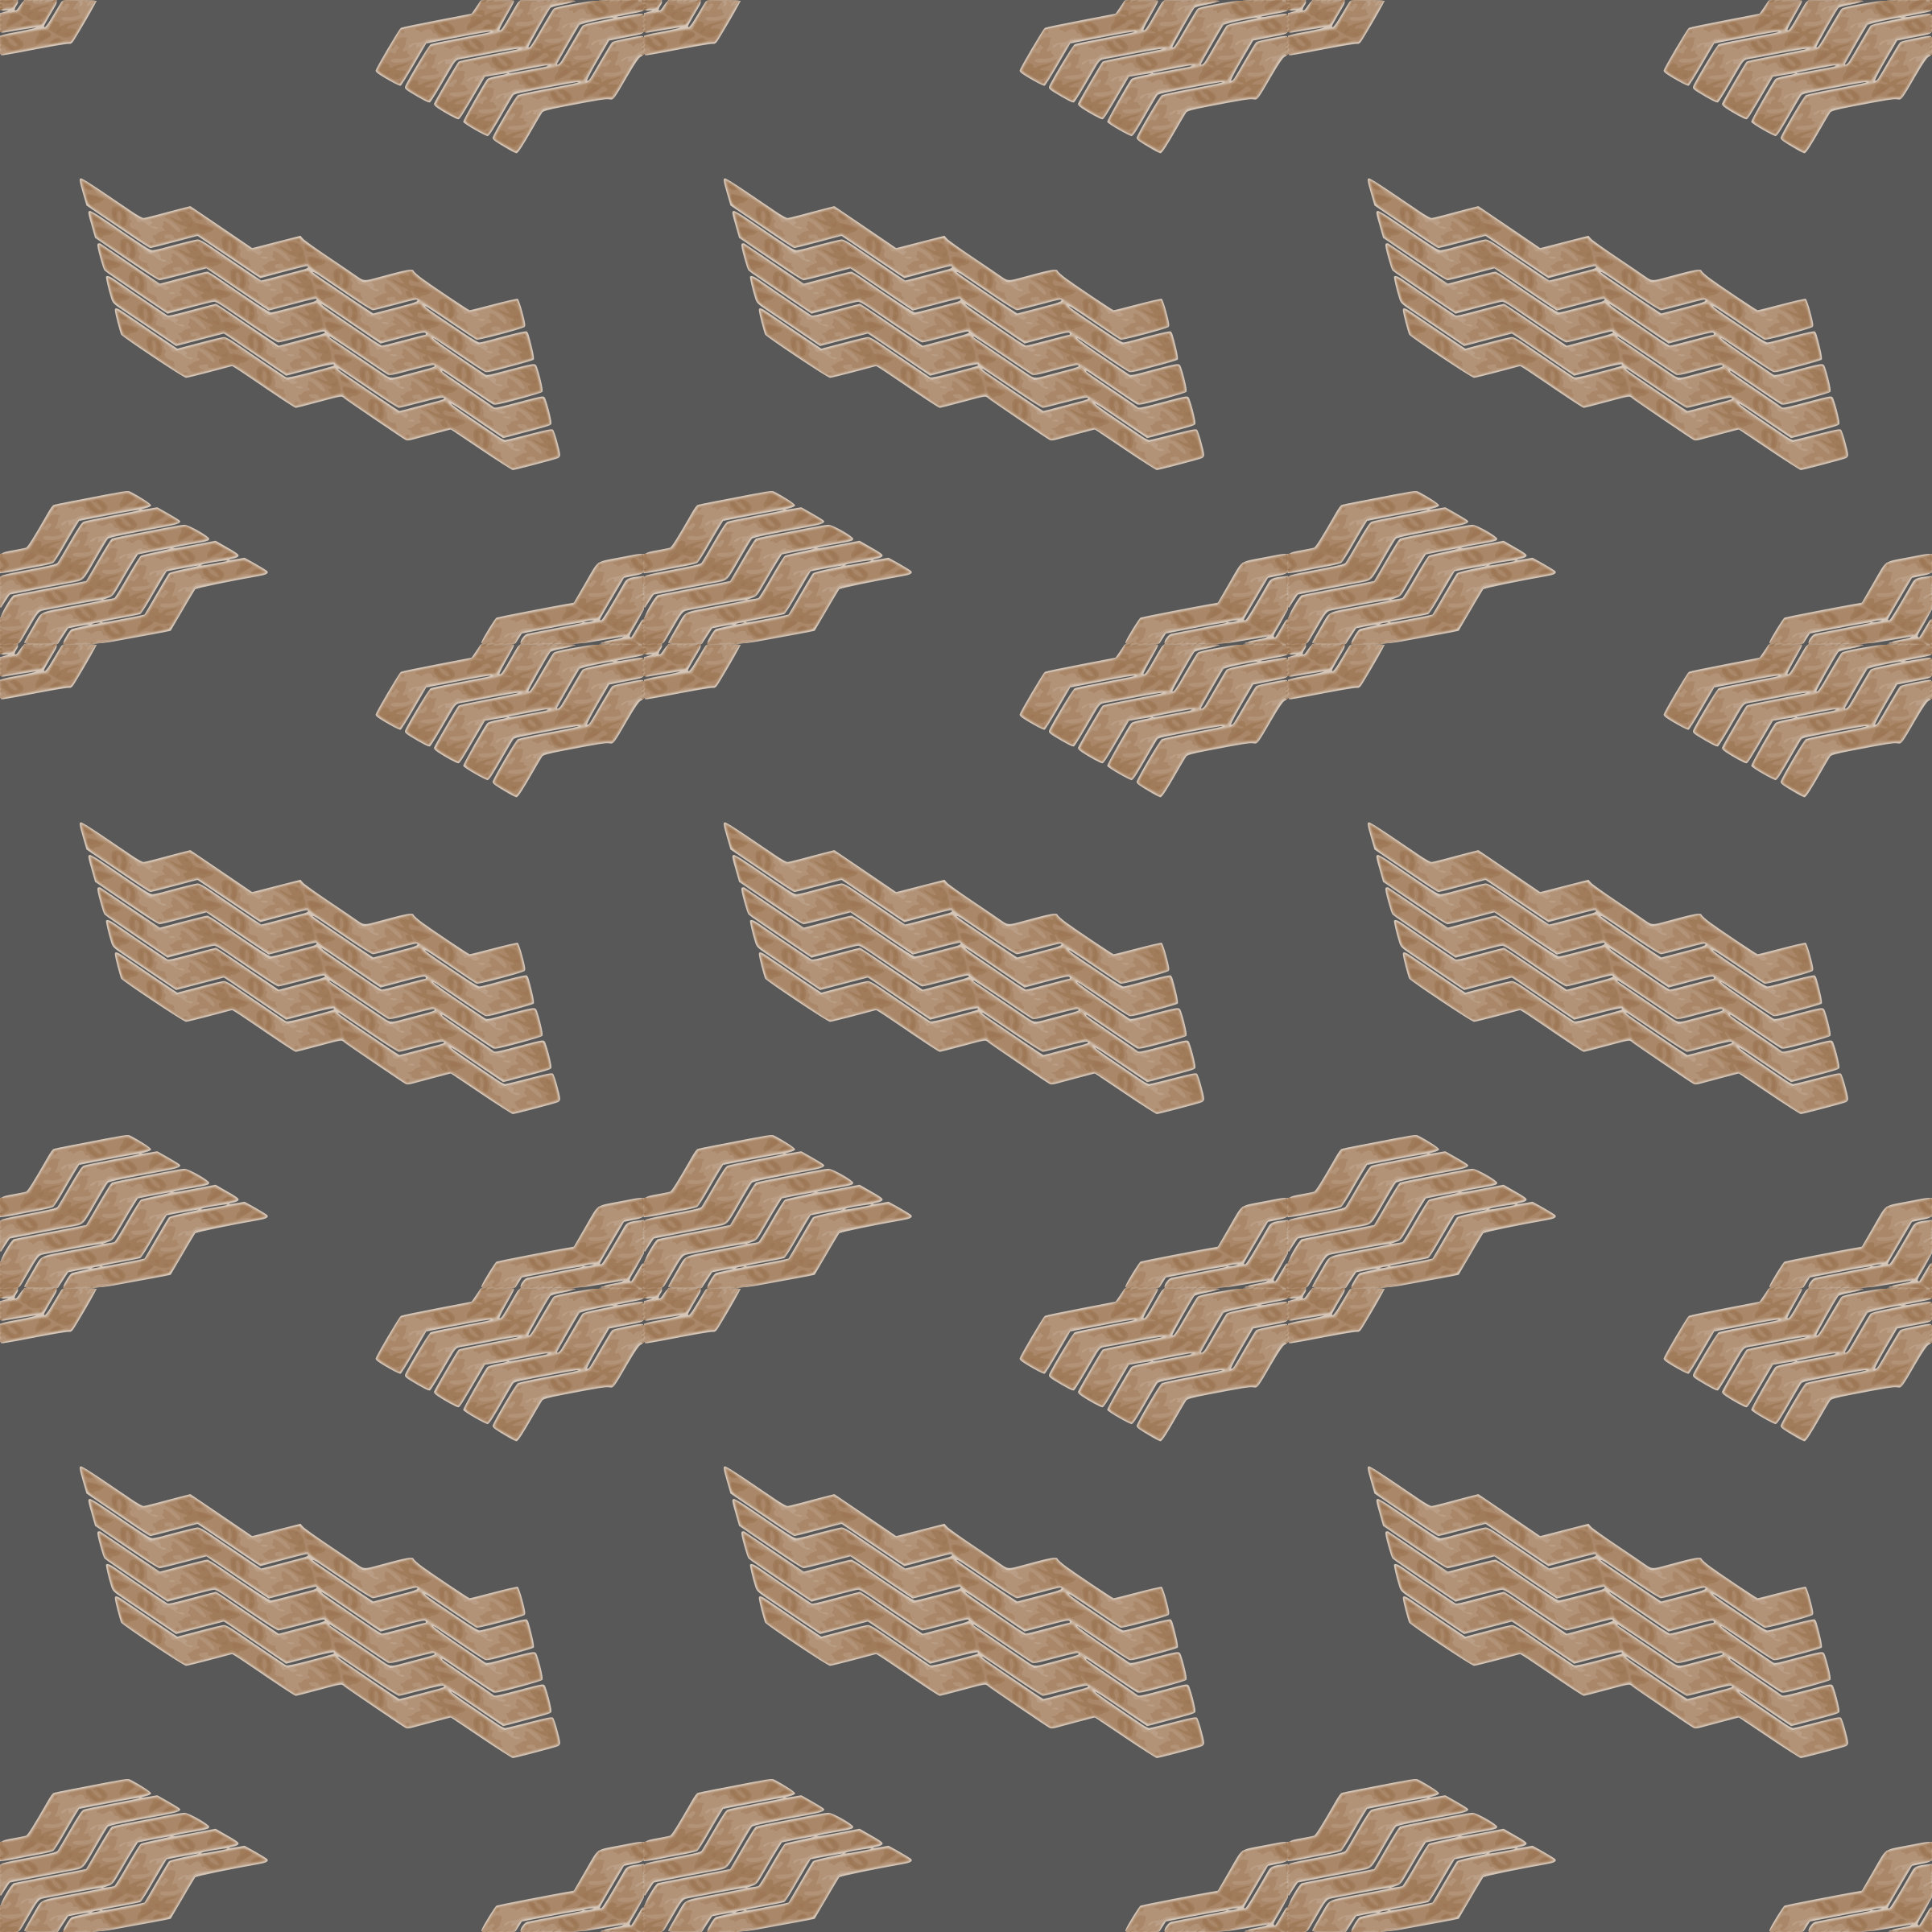 Wooden material-geometry-seamless pattern remix by yamachem